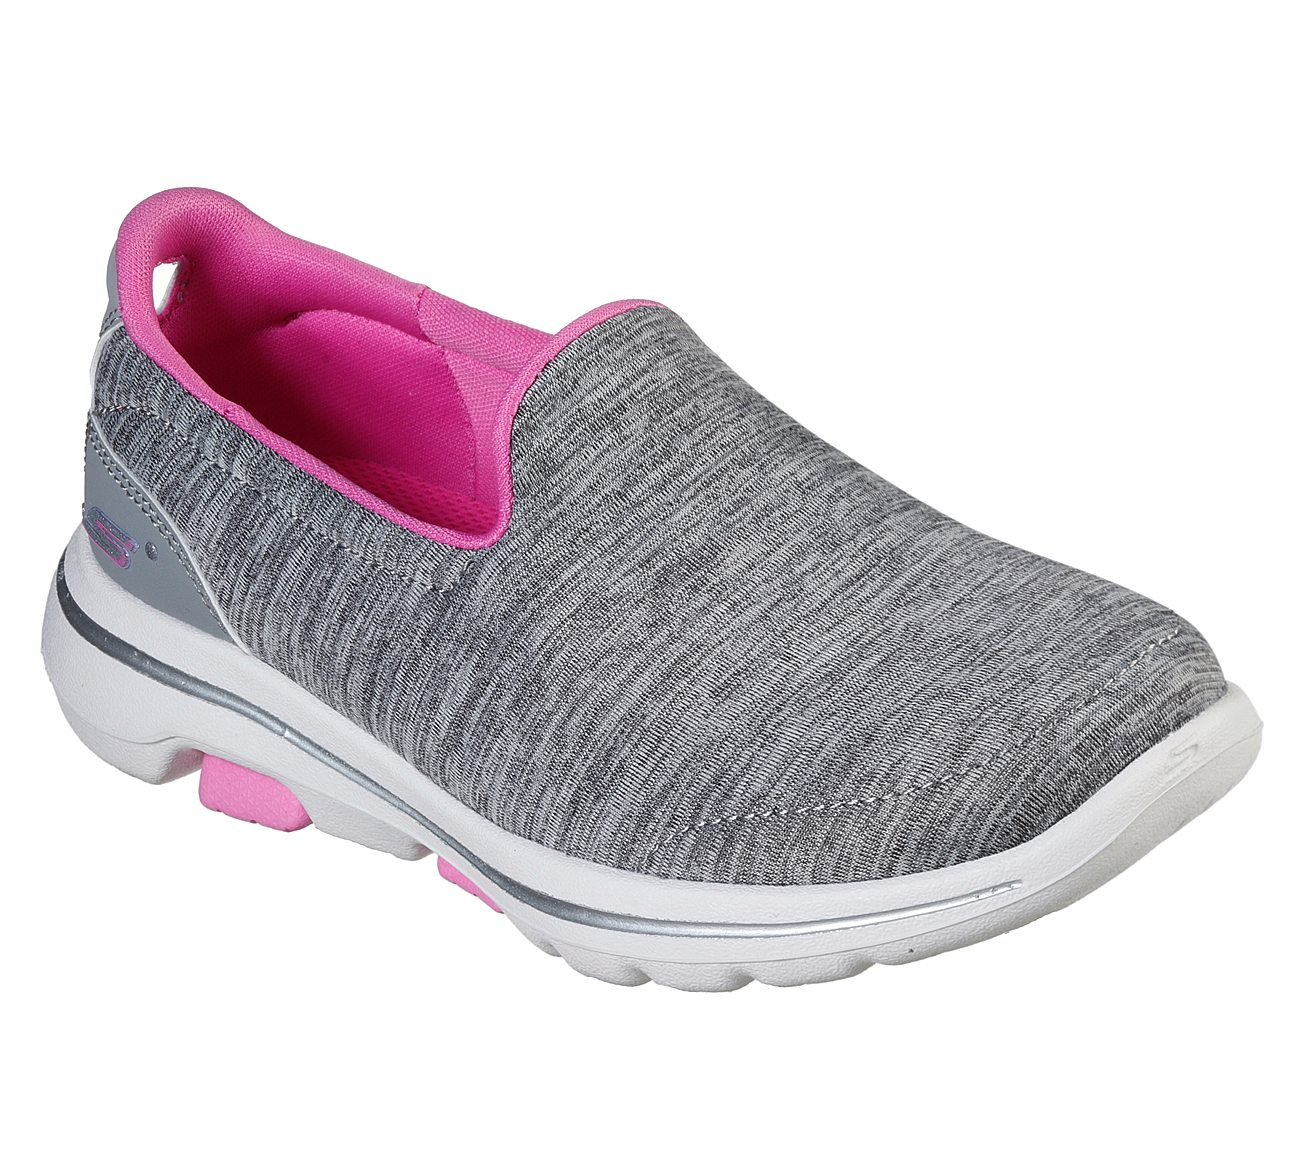 Everyday Play Skechers Performance Shoes